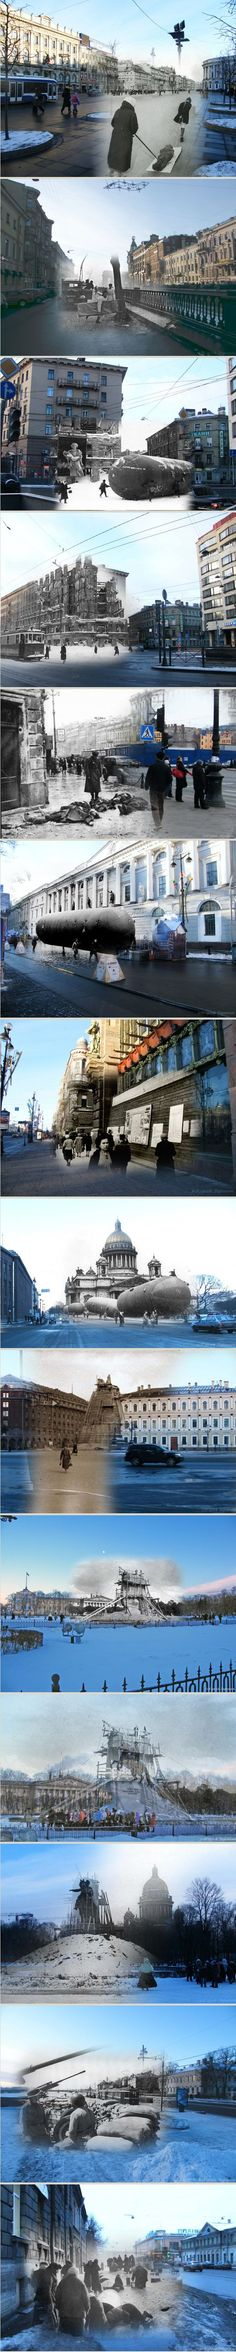 Photographs taken during the Siege of Leningrad superimposed on contemporary photos of the same locations (by Sergei Larenkov). —[From English Russia, via The Long Now http://blog.longnow.org]